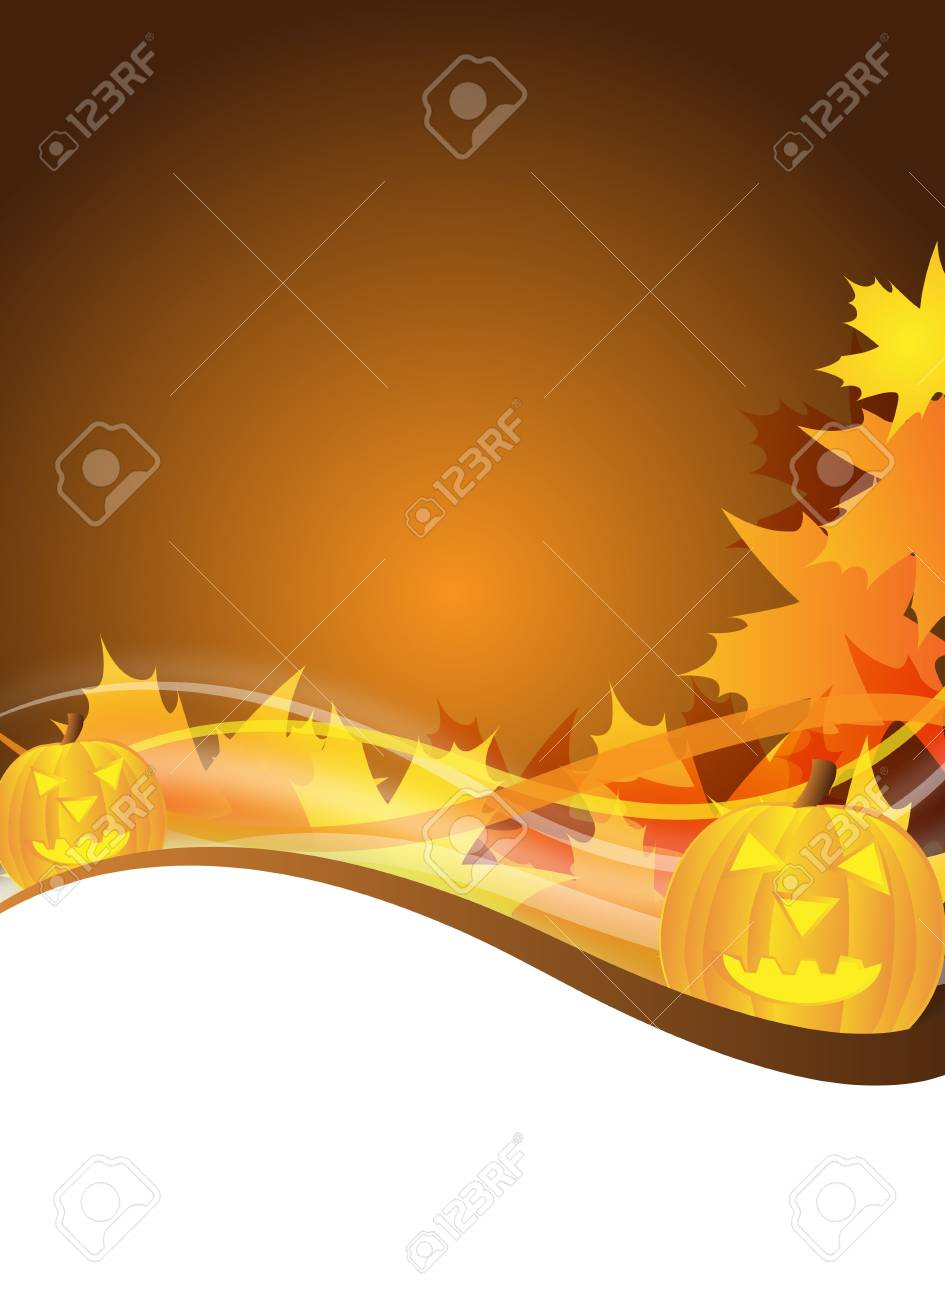 abstract halloween flyer design with pumpkins Stock Photo - 6261922